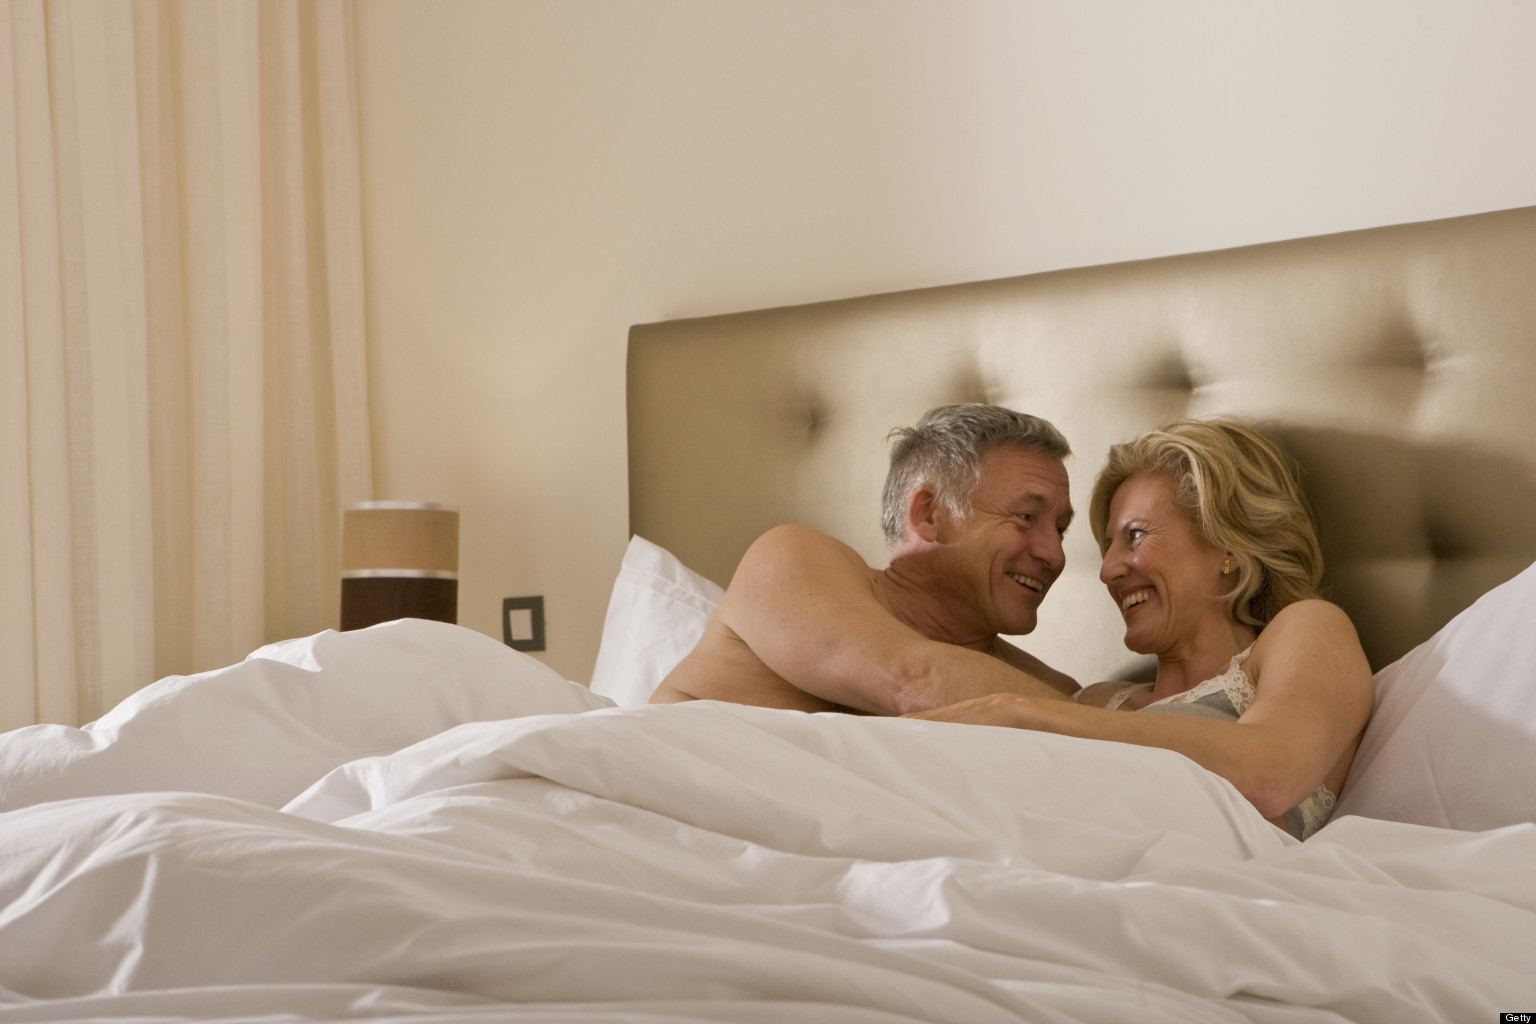 Baby boomers dating site 2